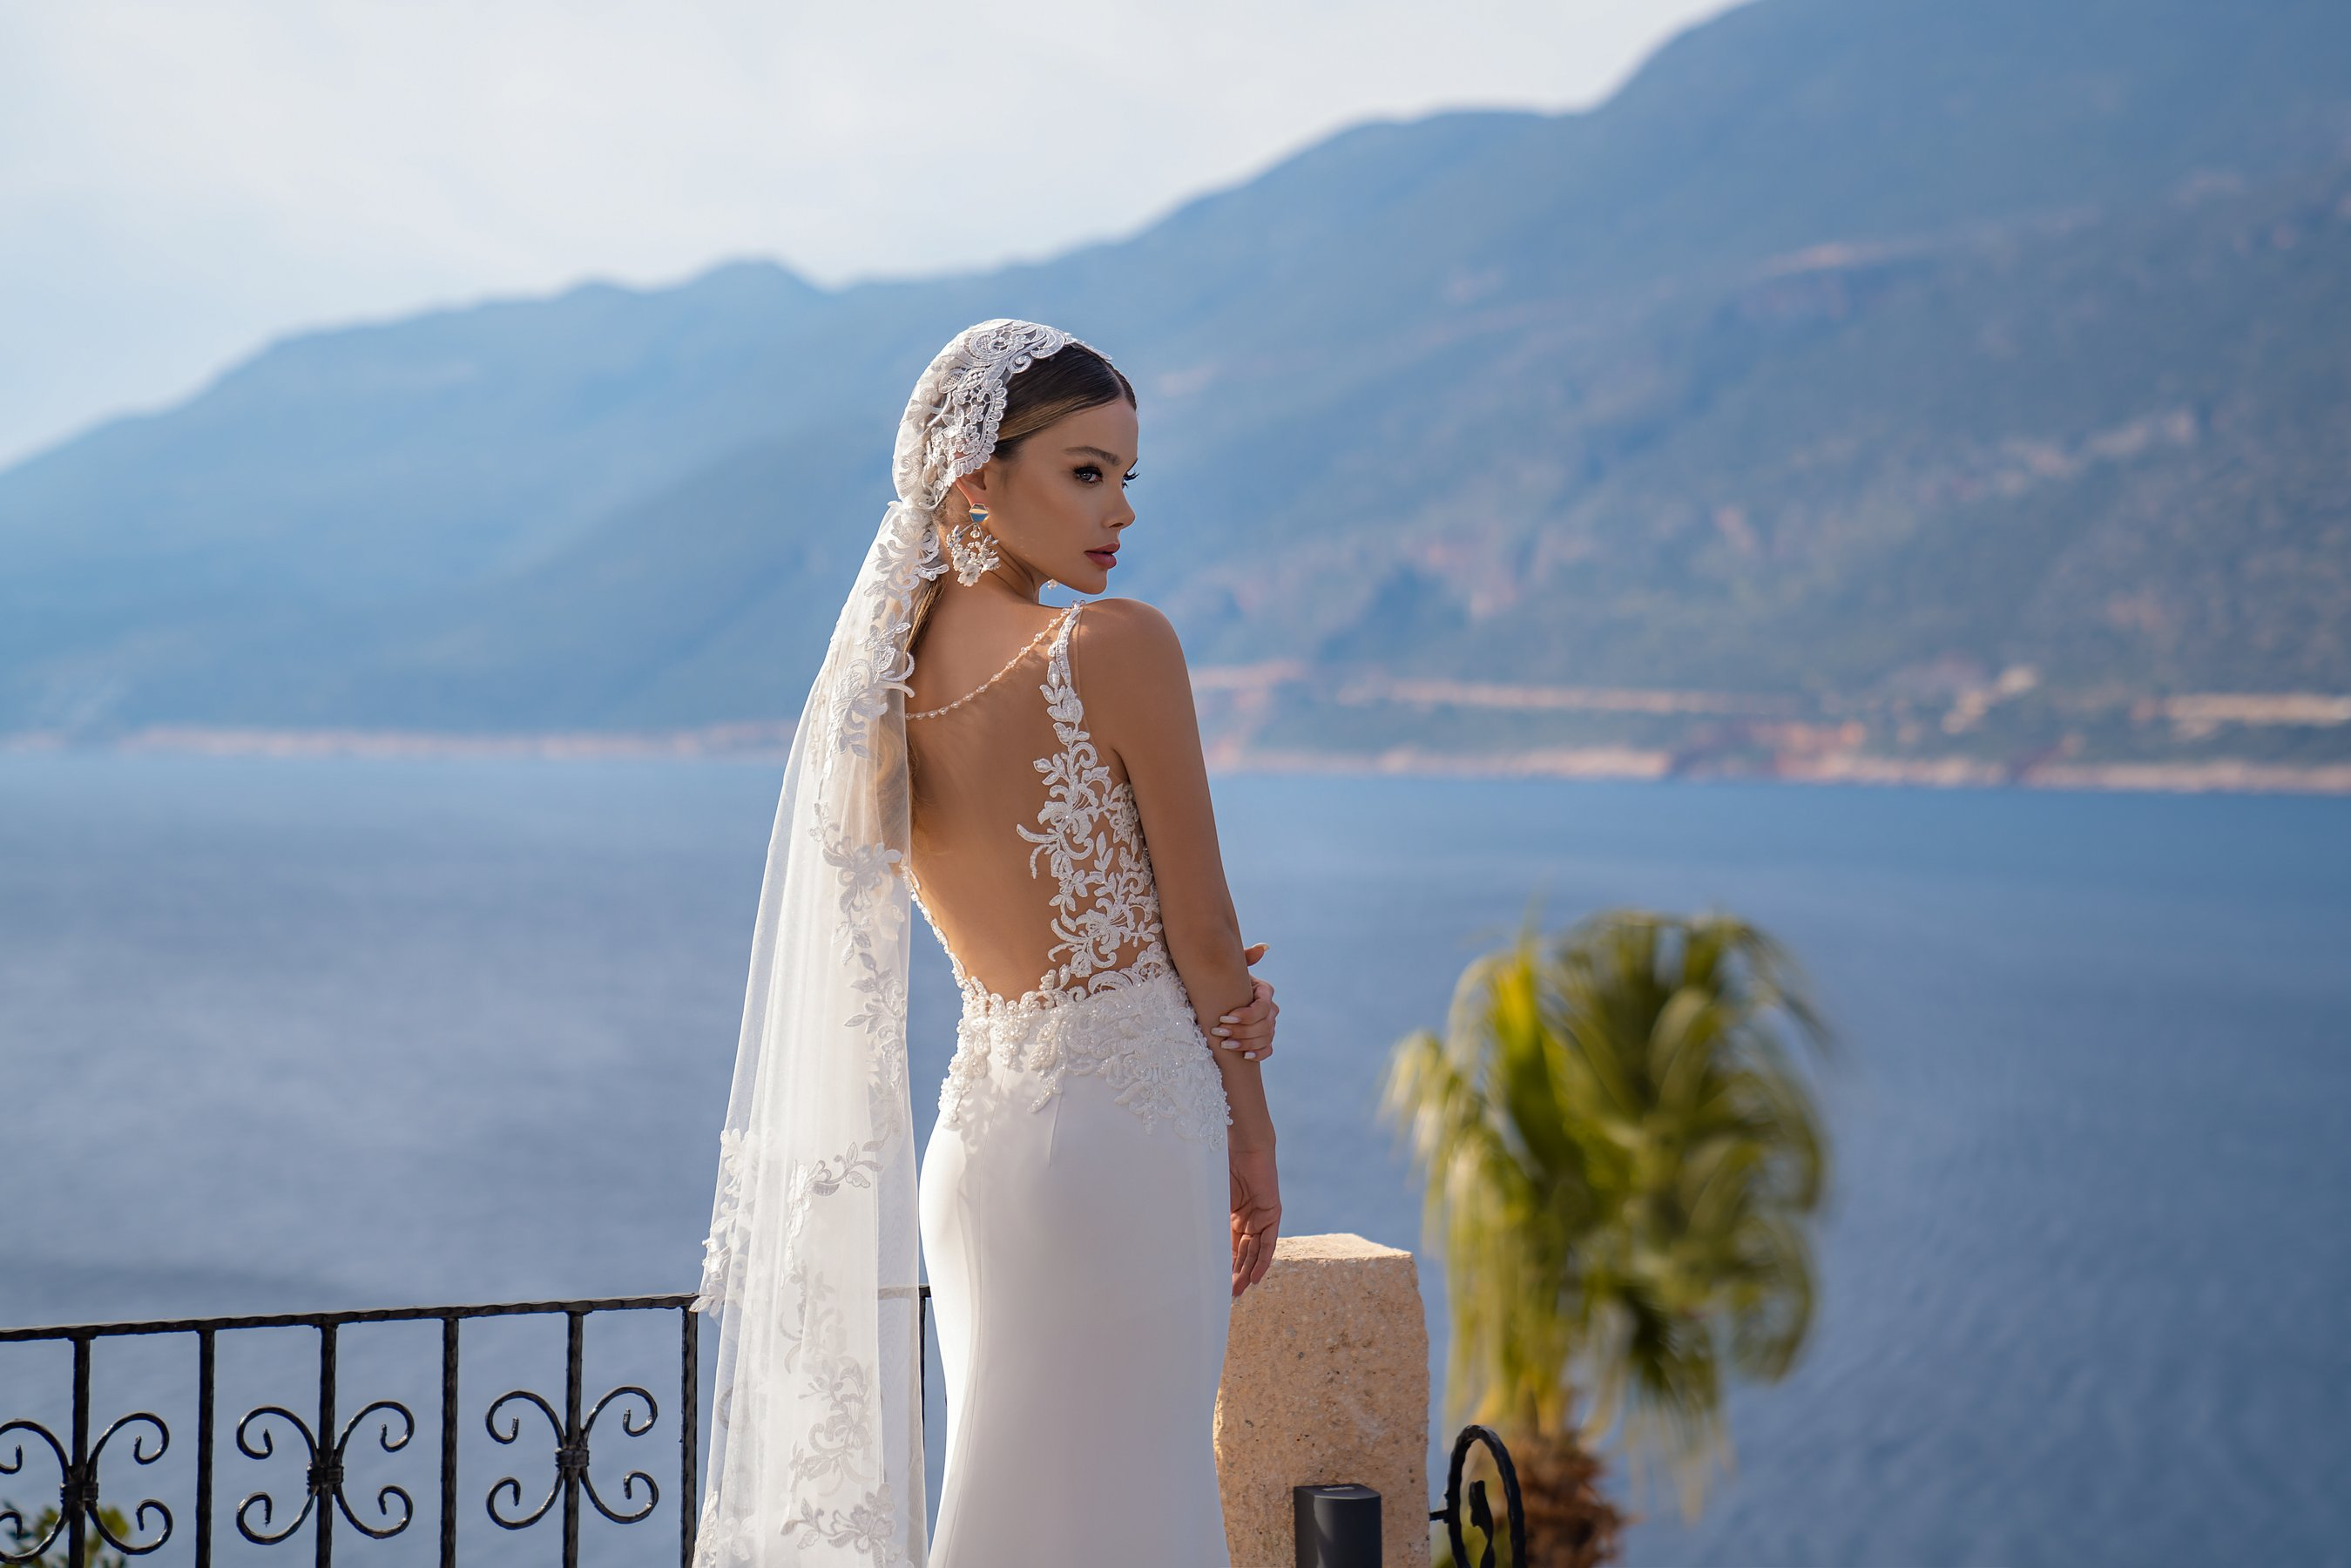 Wholesale strapless wedding dress from supernova-1